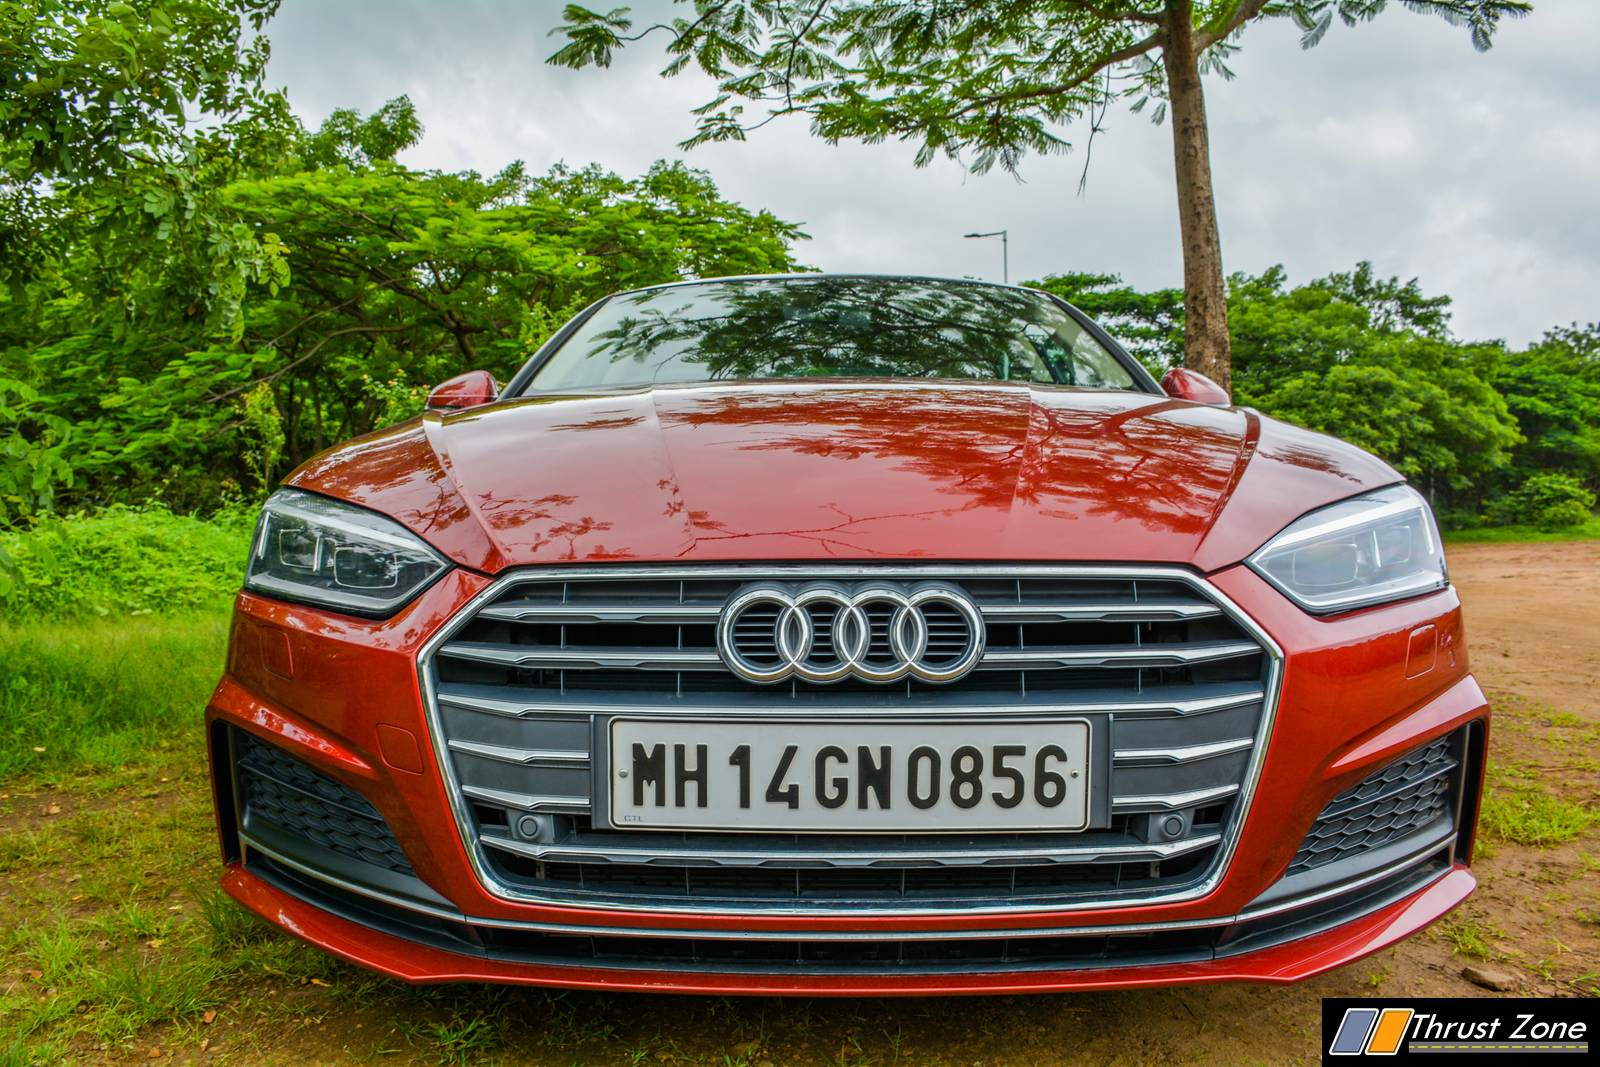 https://www.thrustzone.com/wp-content/uploads/2018/08/2018-Audi-A5-Diesel-India-Review-12.jpg